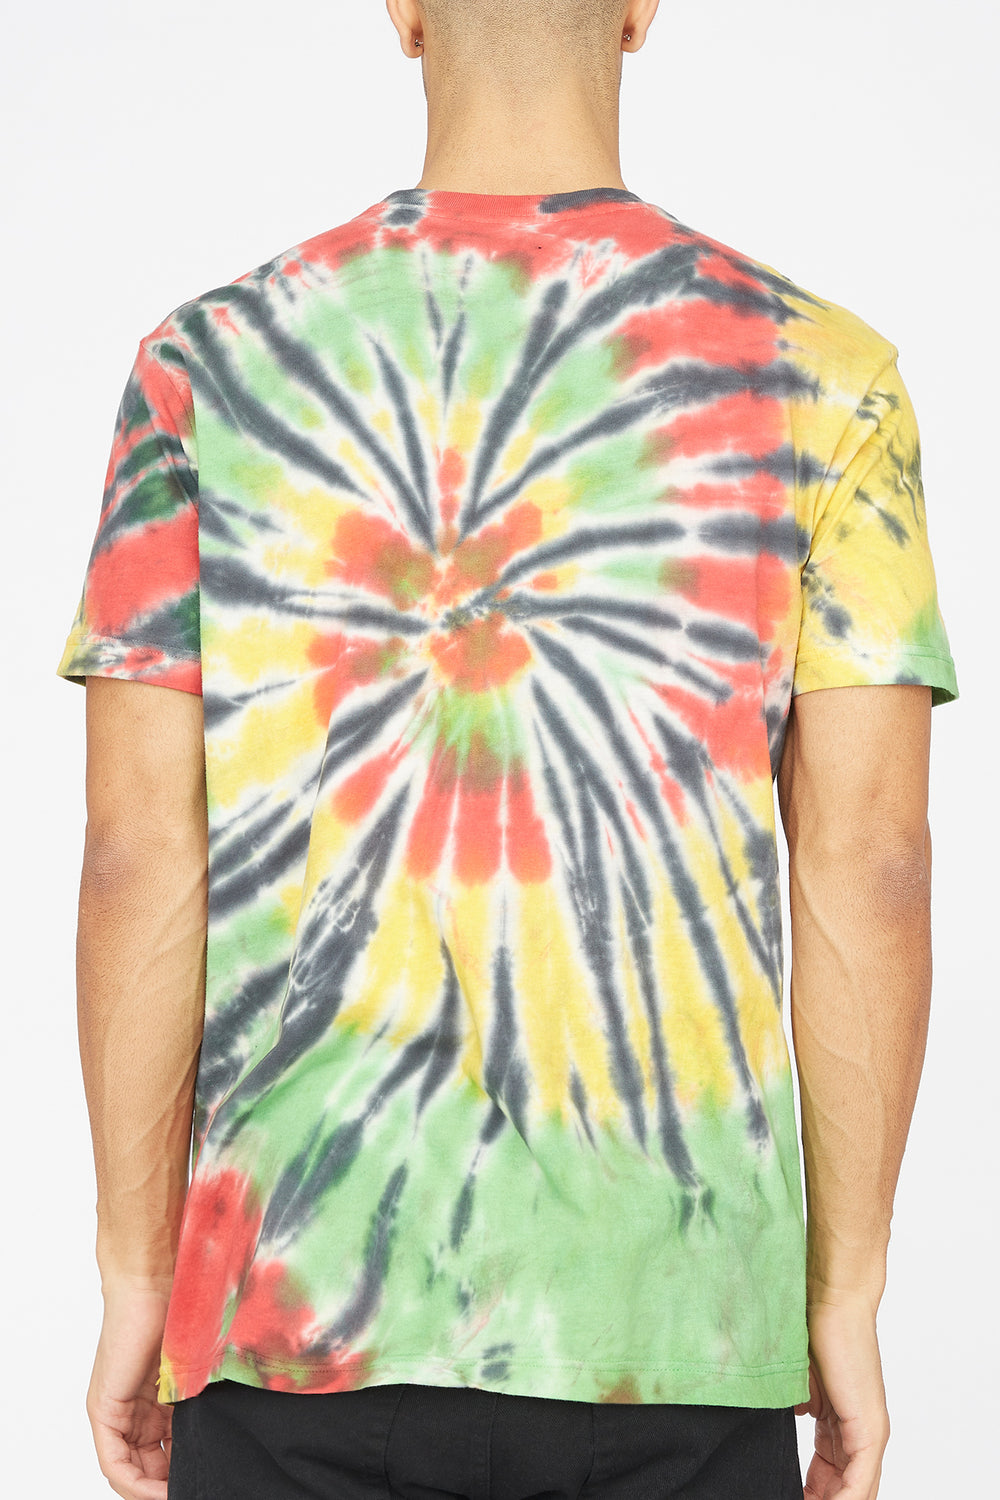 T-Shirt Tie-Dye Lined Up Grizzly Multi